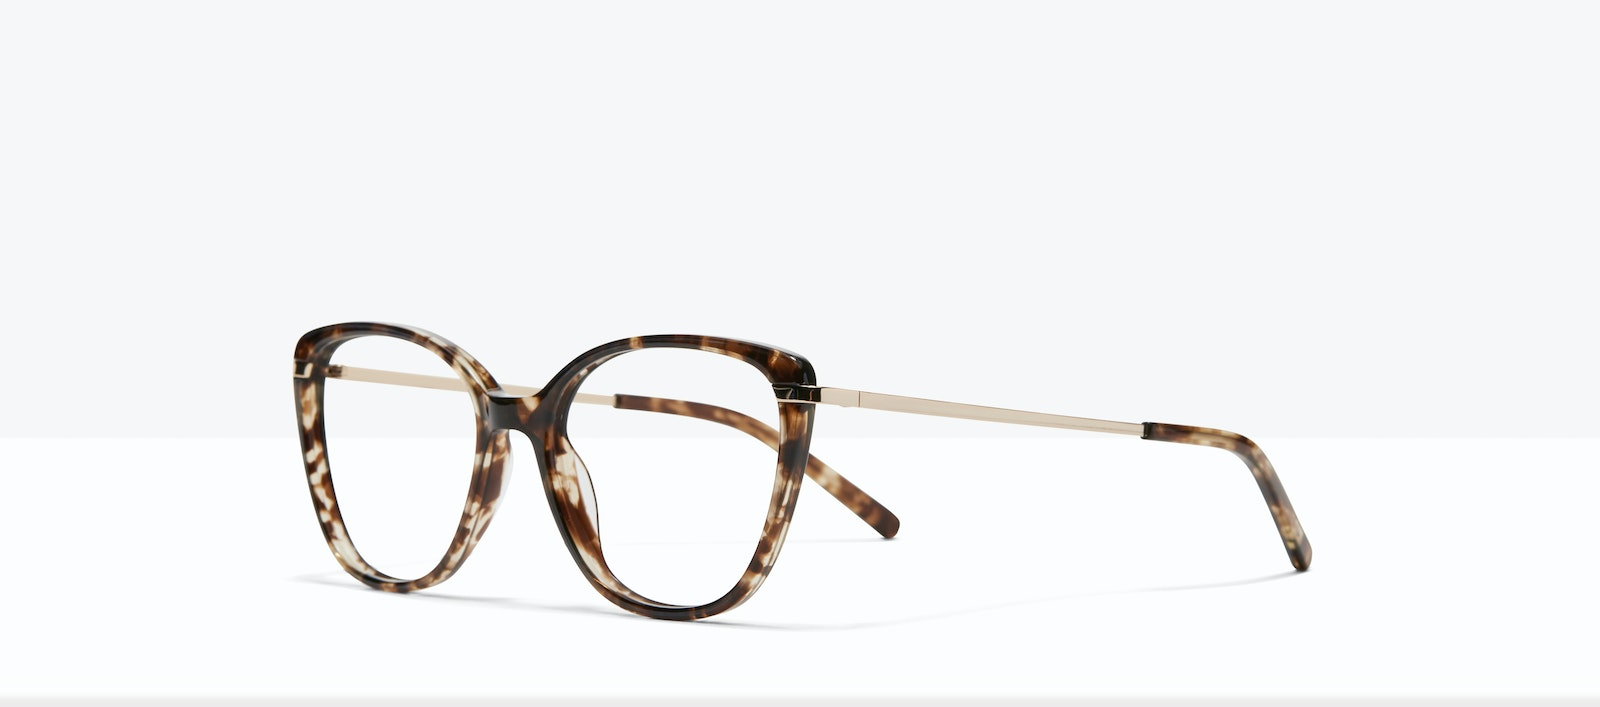 Affordable Fashion Glasses Rectangle Square Eyeglasses Women Illusion L Leopard Tilt